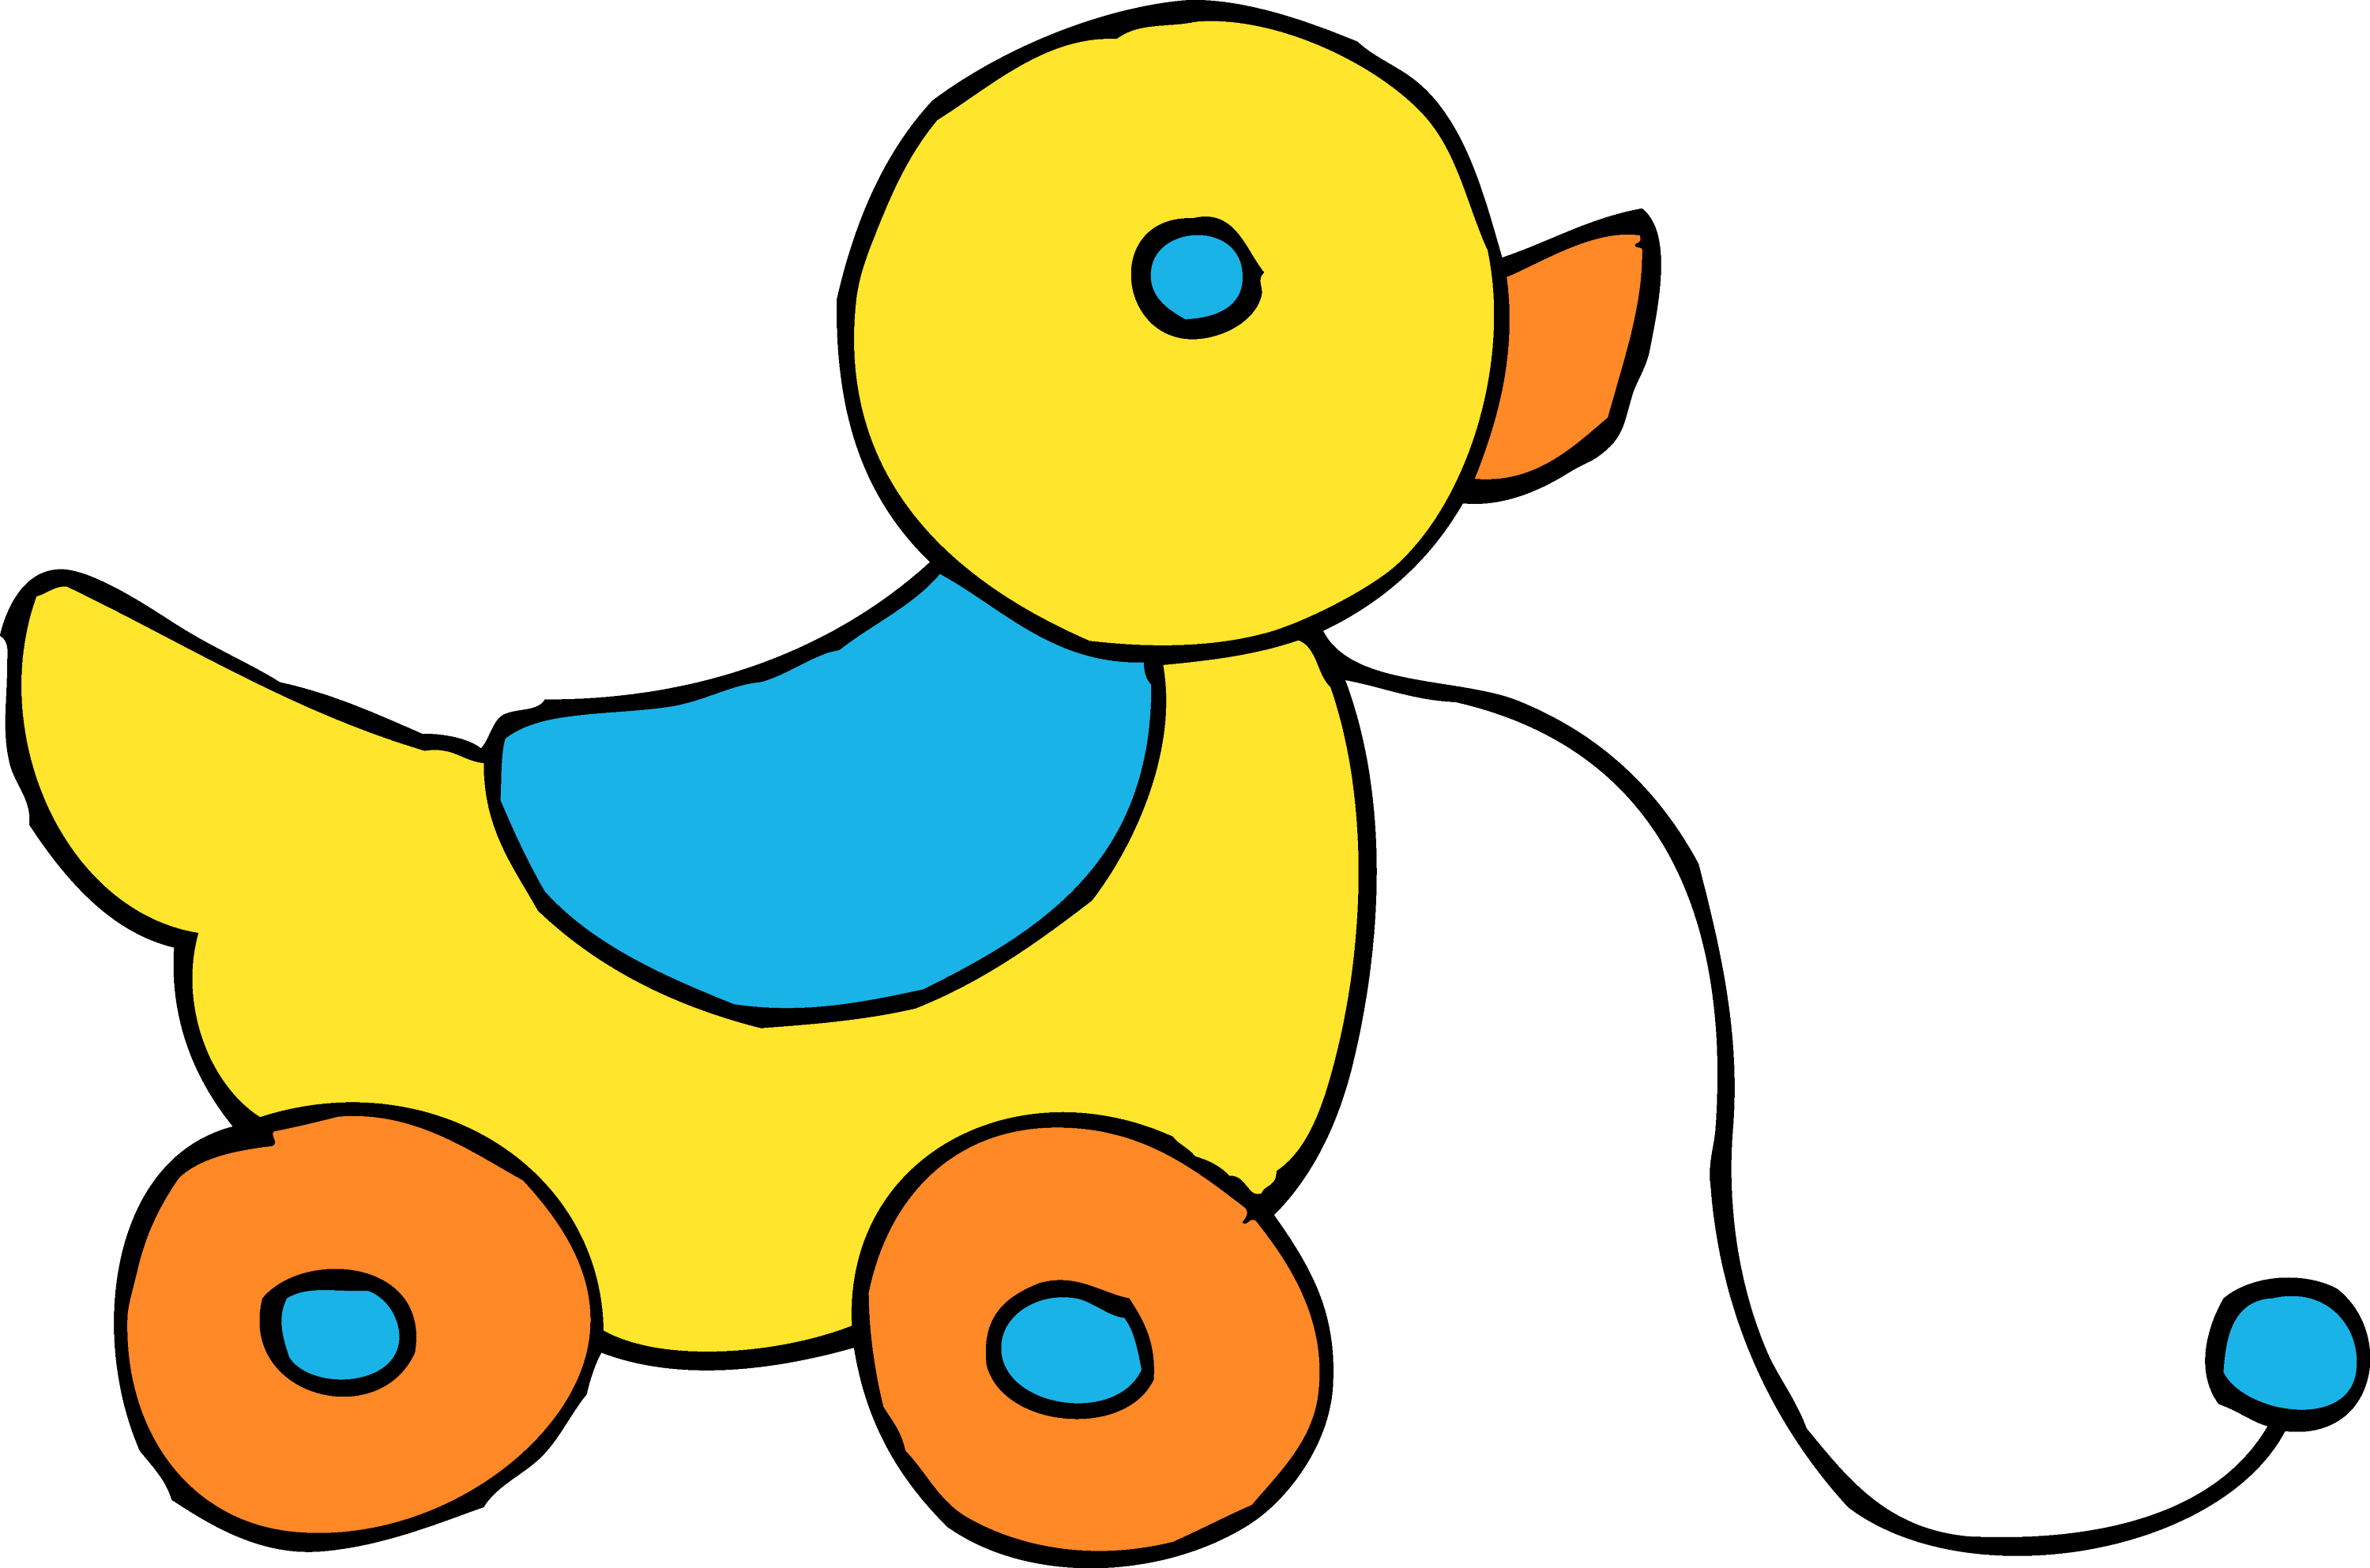 Baby Toys Clip Art : Rolling yellow ducky toy clipart free clip art